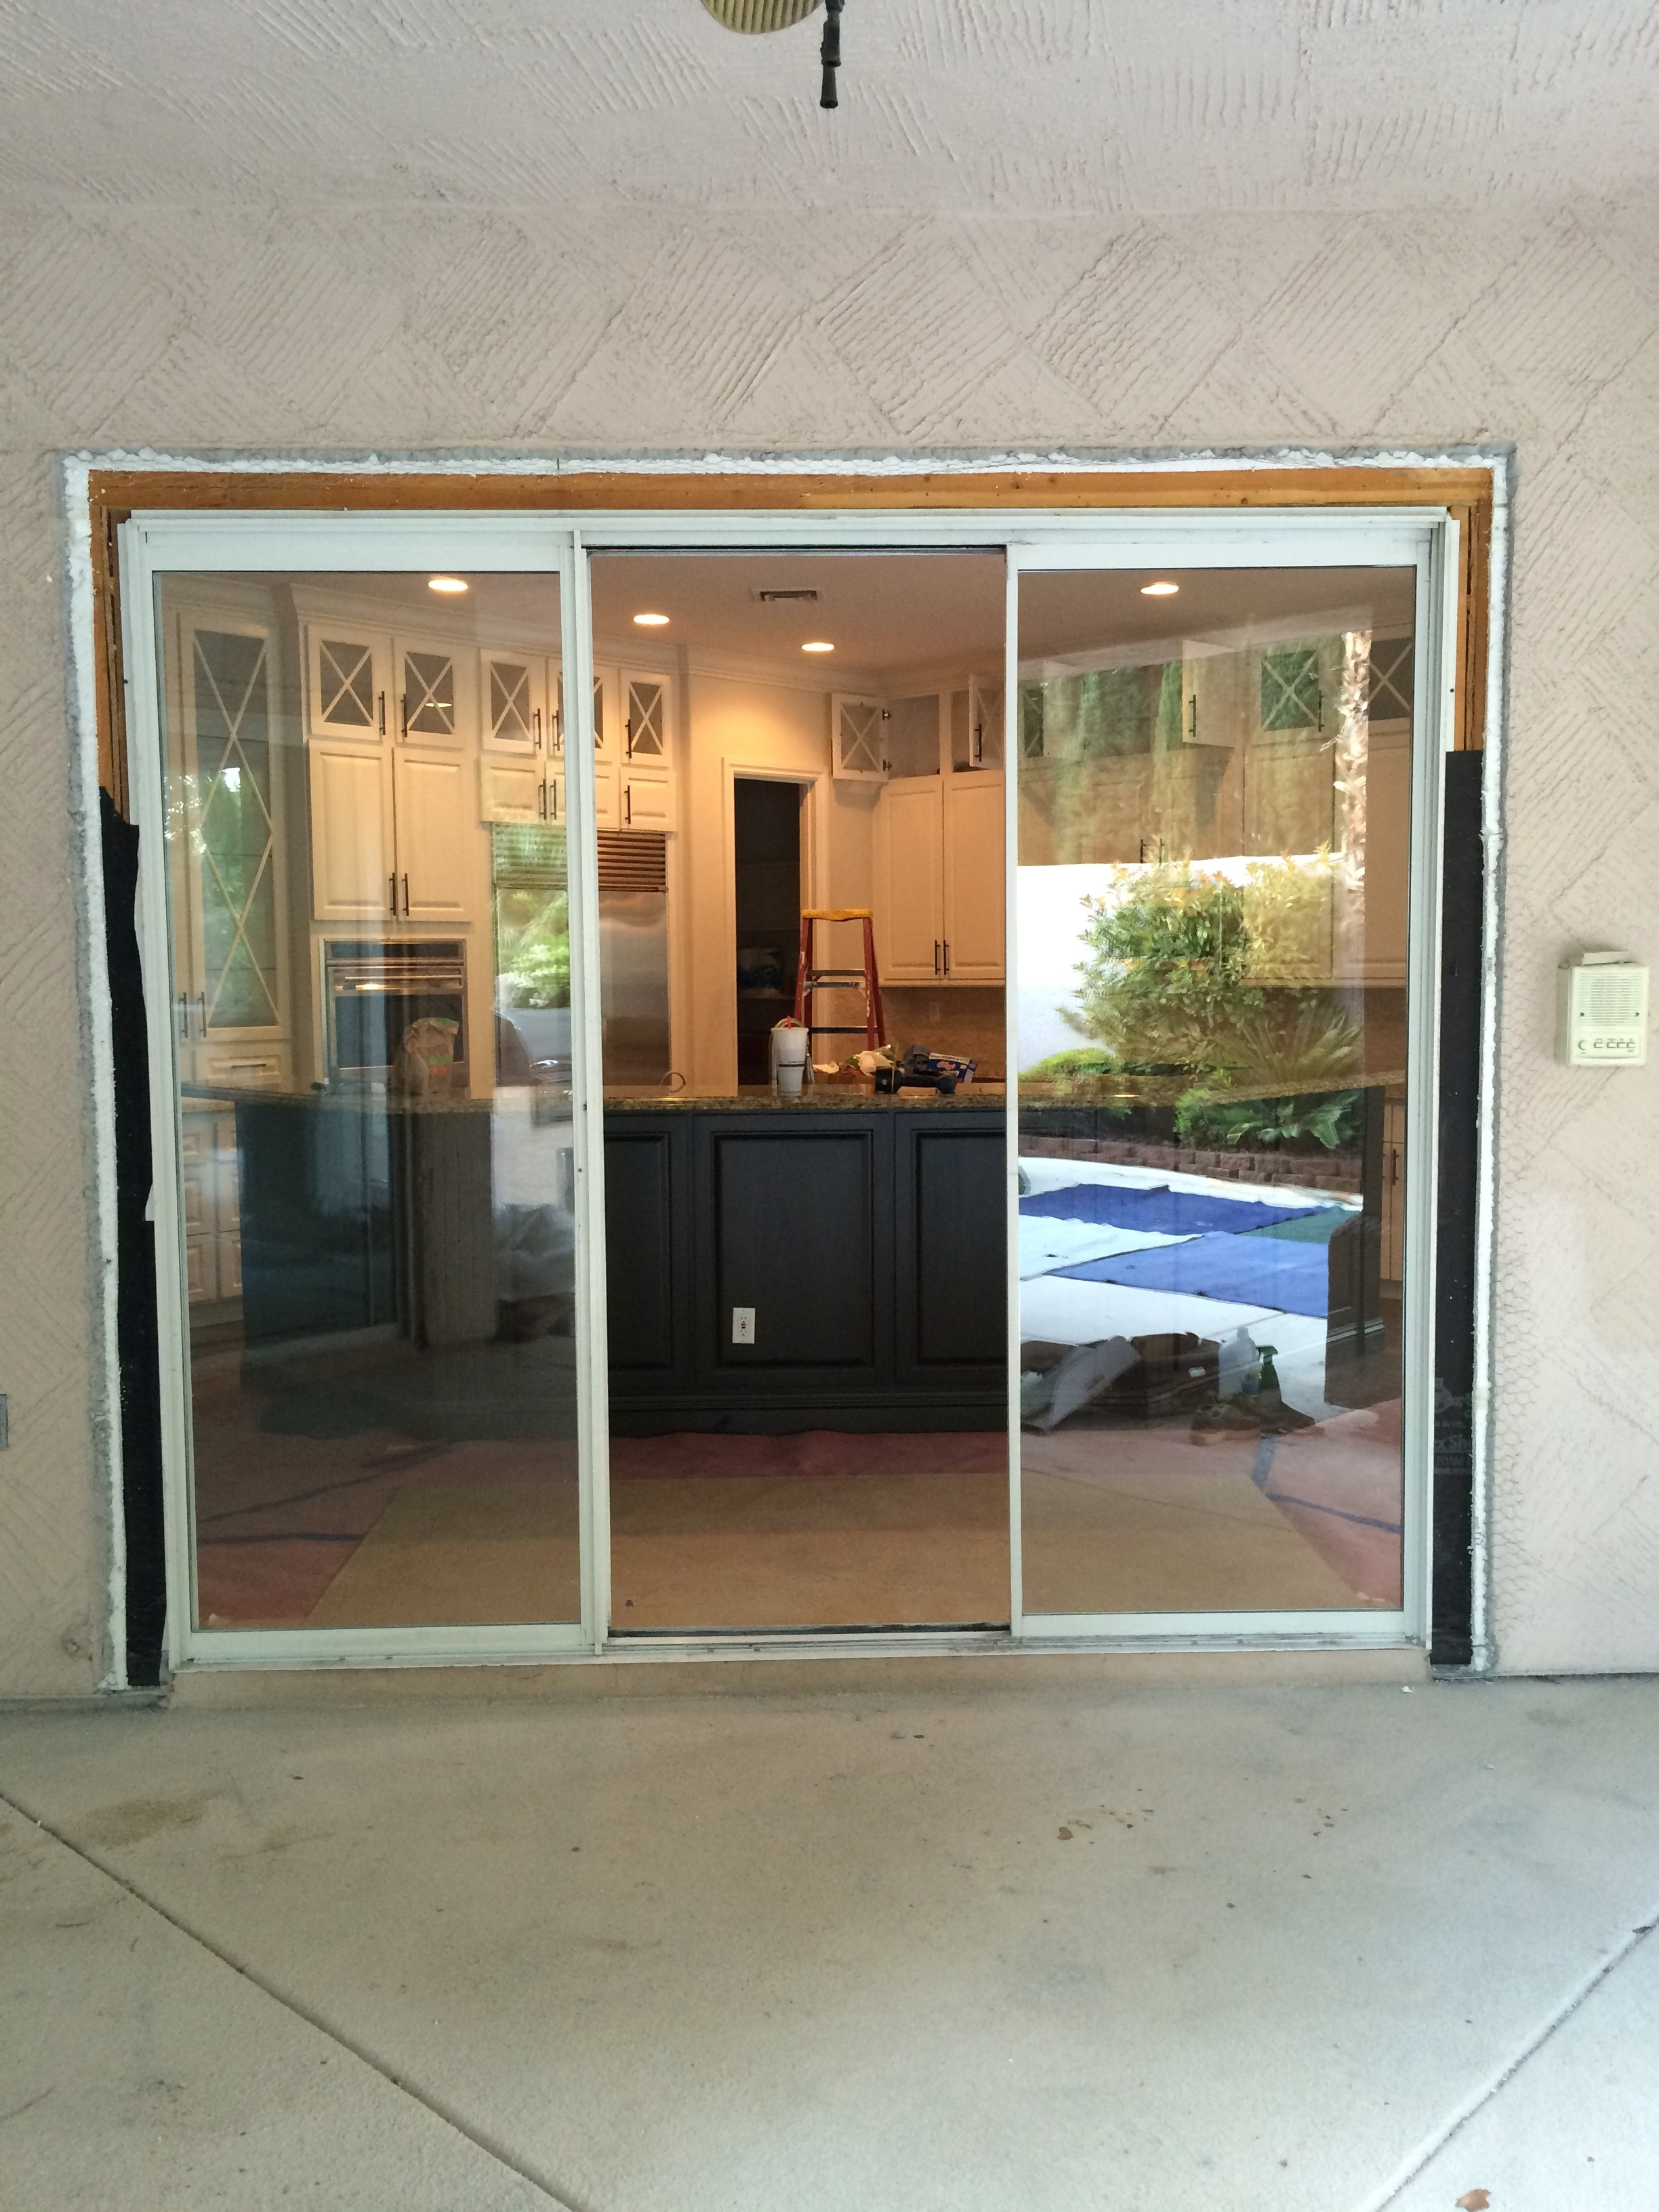 9 Foot Wide Sliding Glass Door